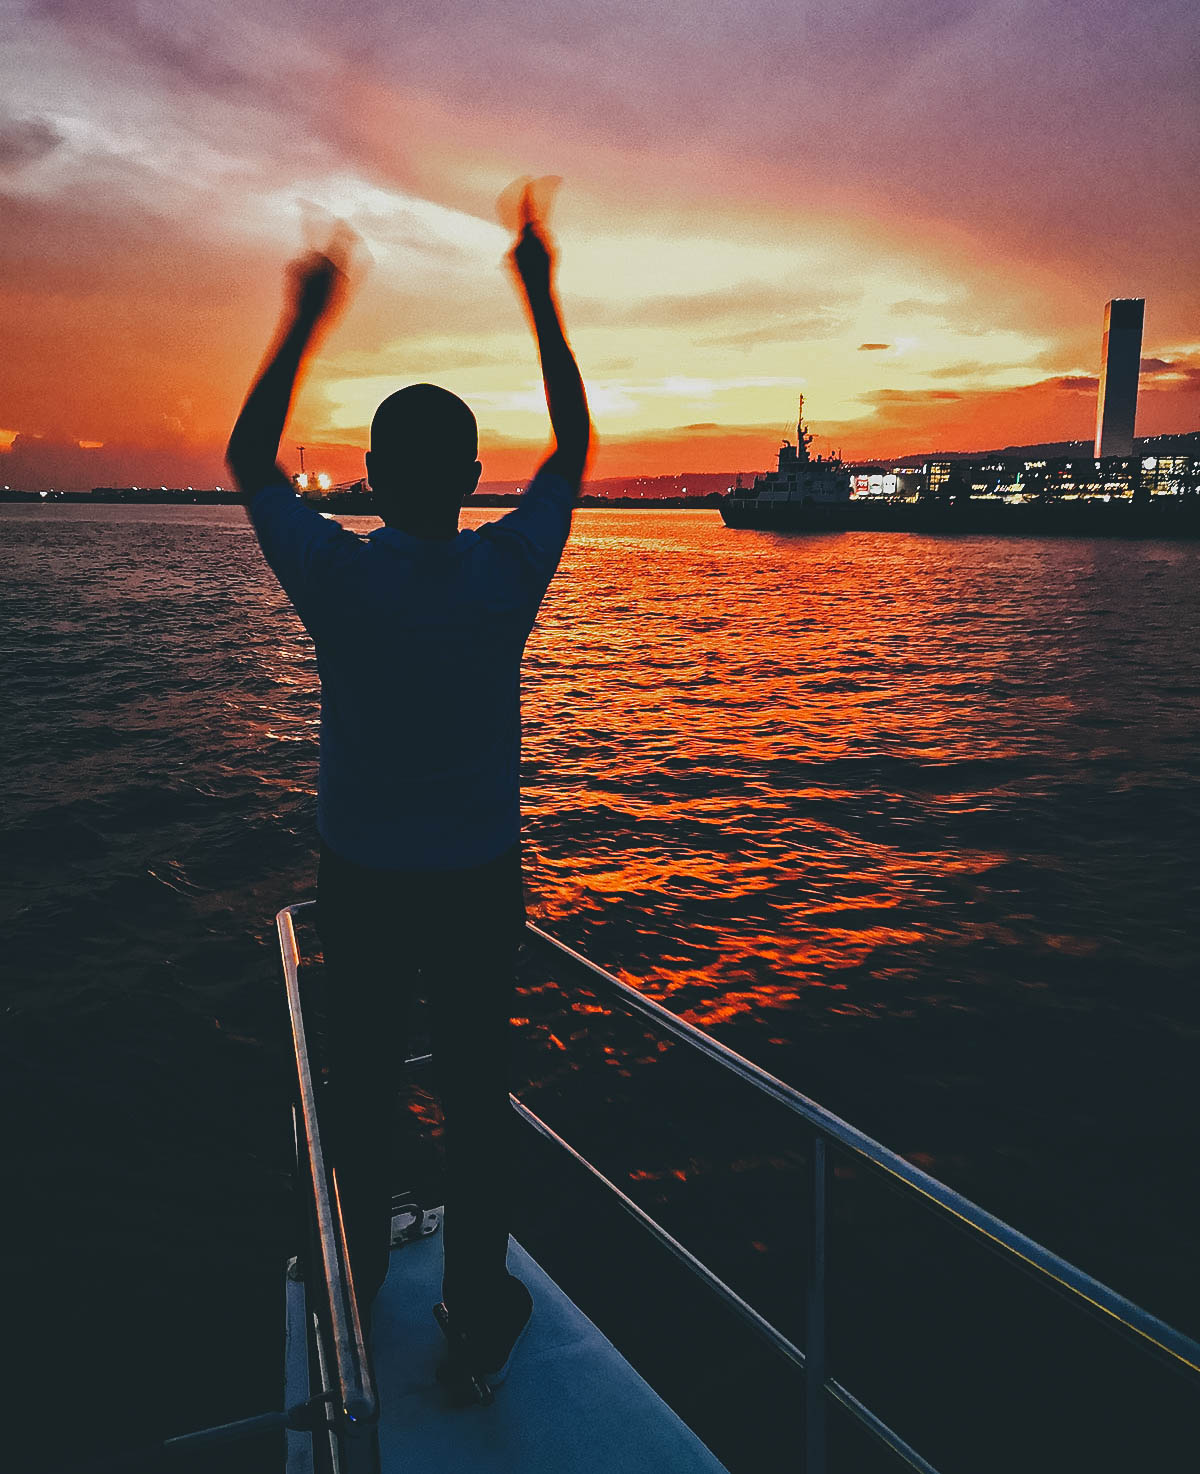 Luxury Sunset Cruise with Dinner and Unlimited Drinks, Cebu, Philippines